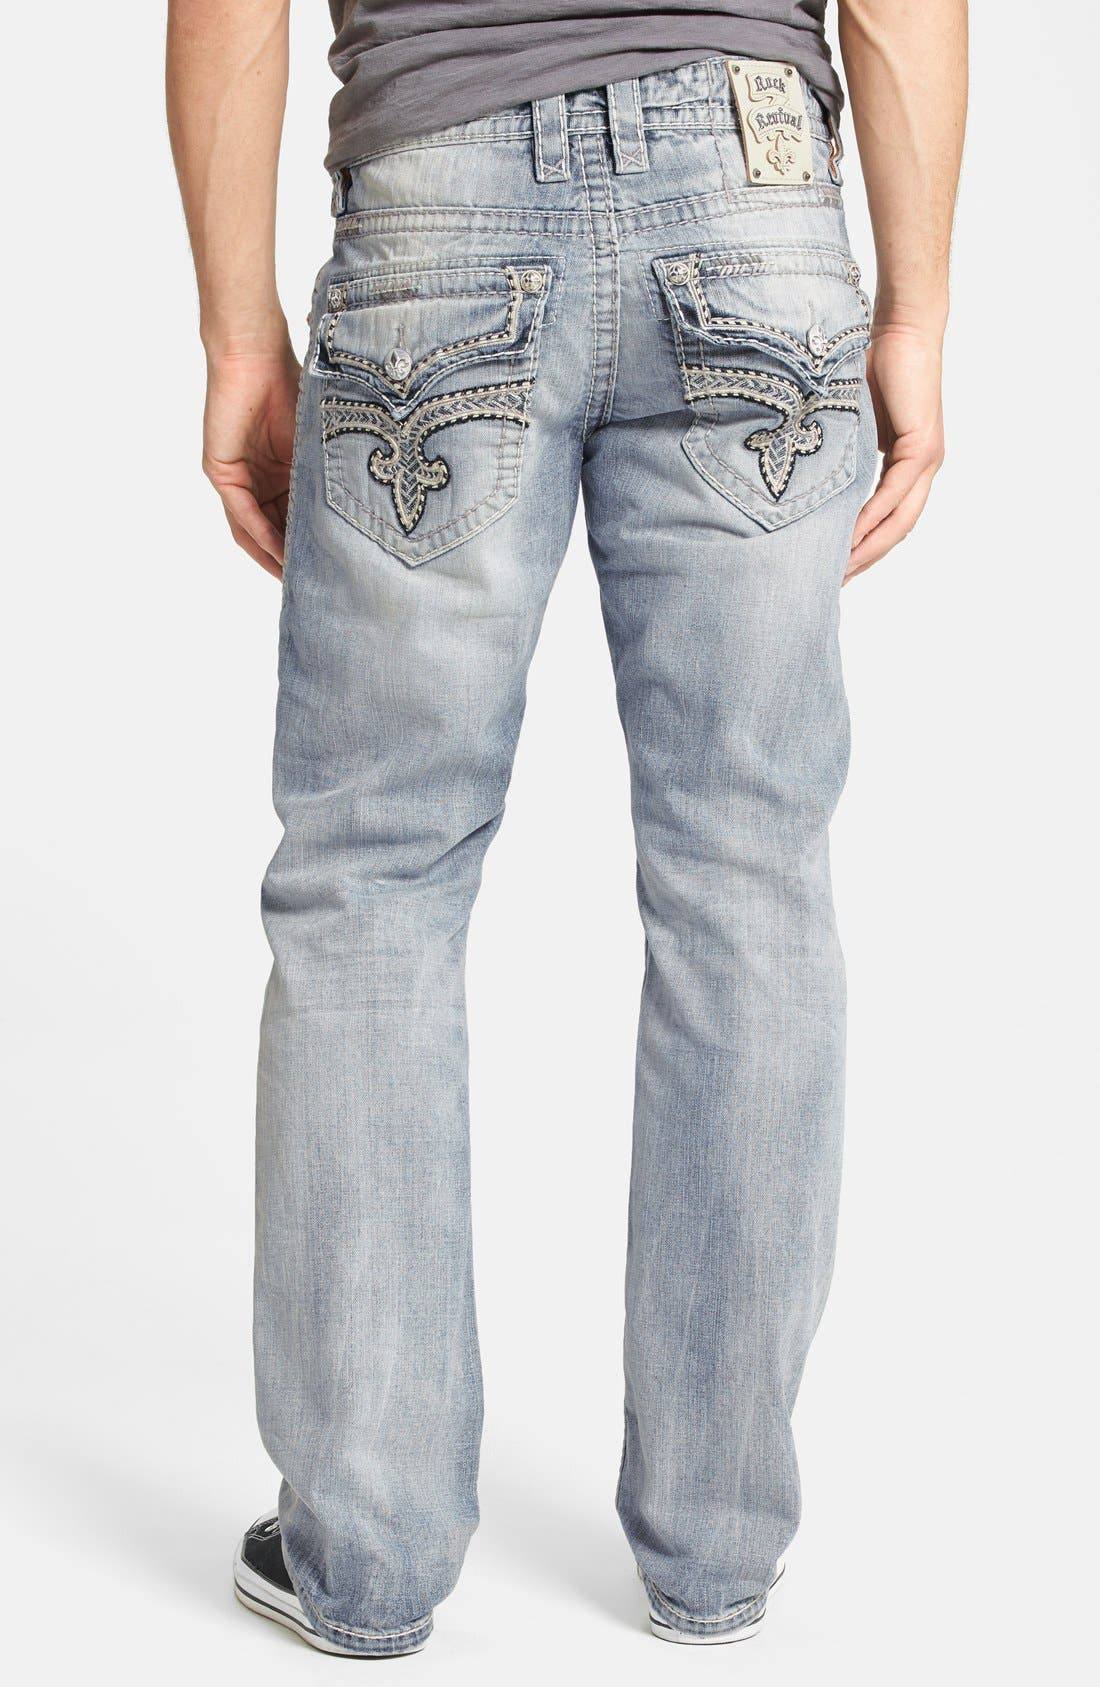 Alternate Image 1 Selected - Rock Revival 'Humfrey' Straight Leg Jeans (Light Blue)